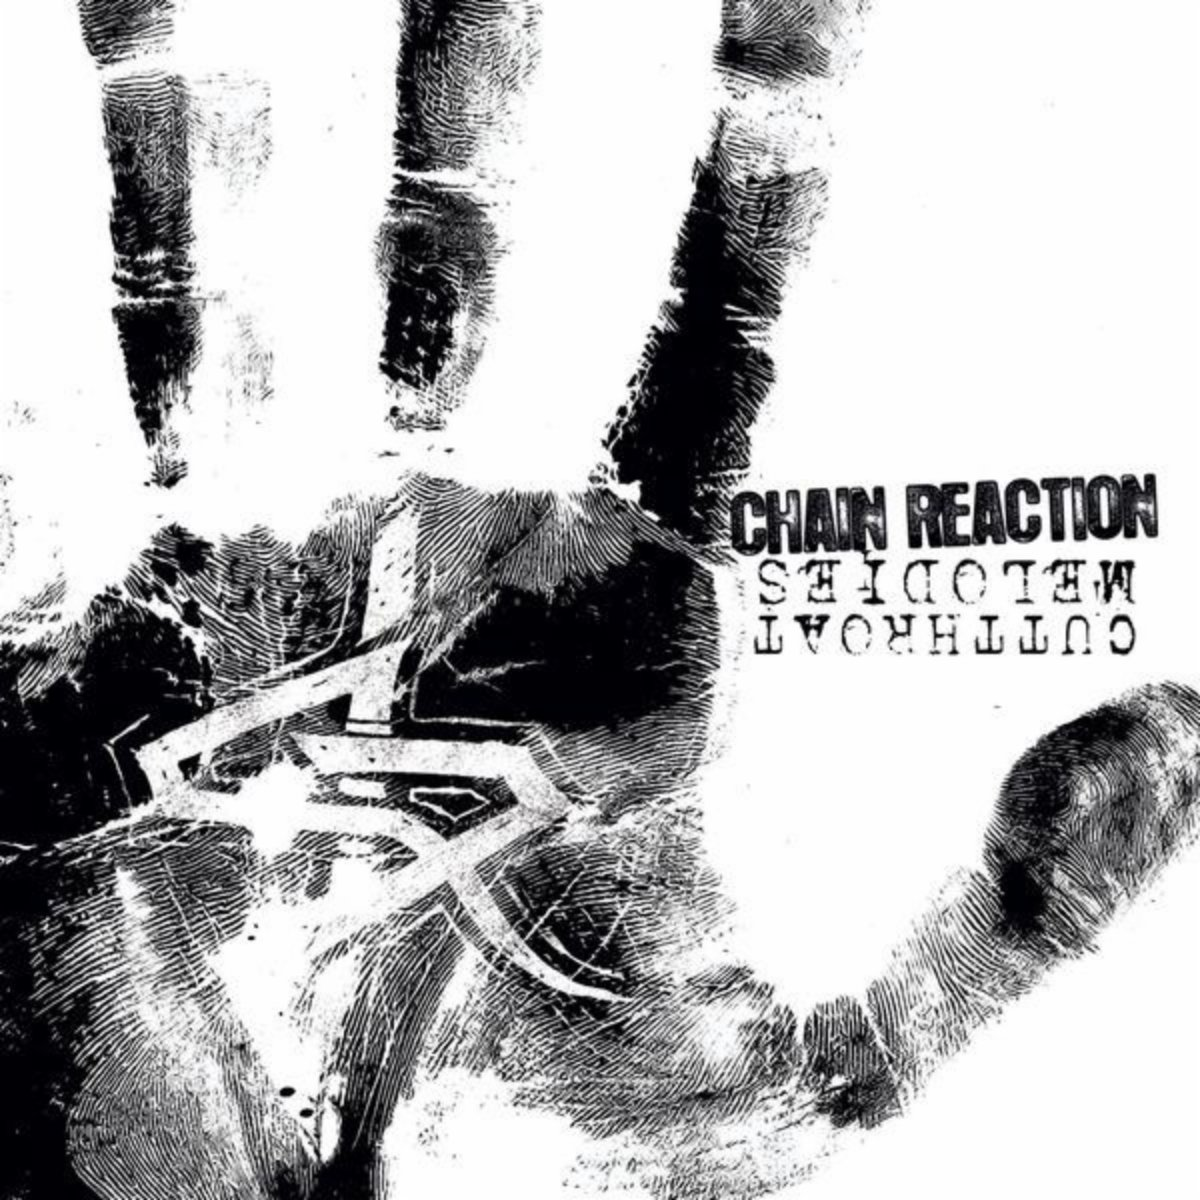 Chain Reaction - Cutthroat Melodies (2010) [FLAC] Download